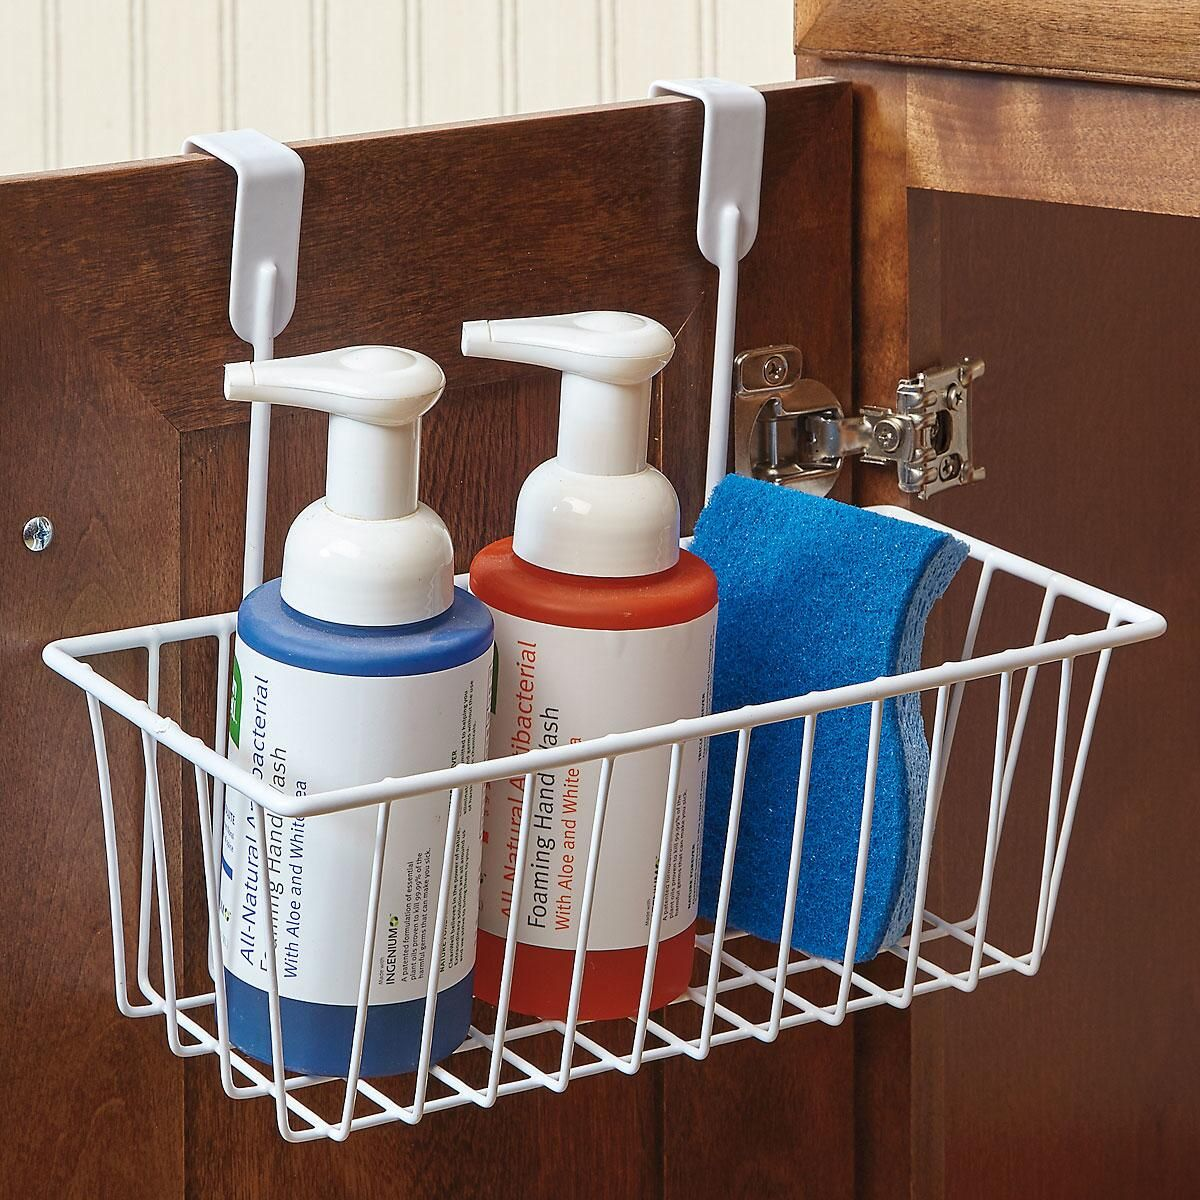 Baskets Above Kitchen Cabinets: Kitchen Cabinet Basket